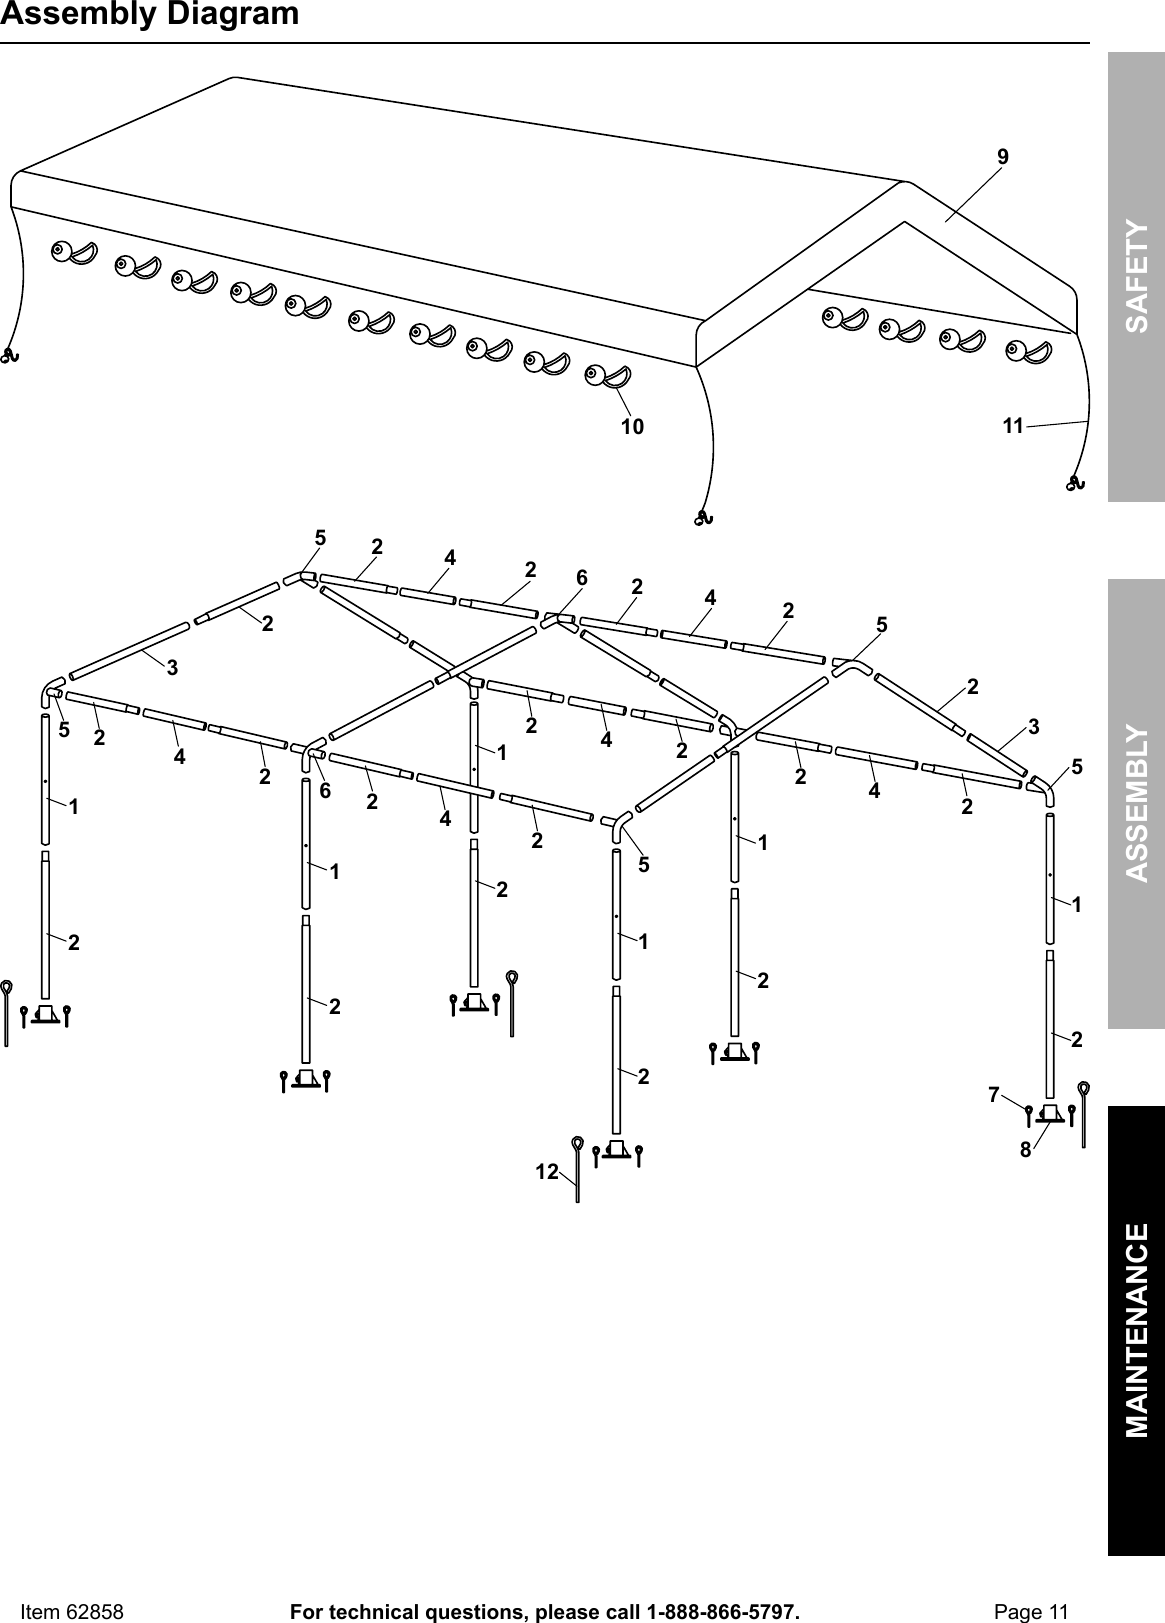 Manual For The 62858 10 Ft. X 20 Portable Car Canopy